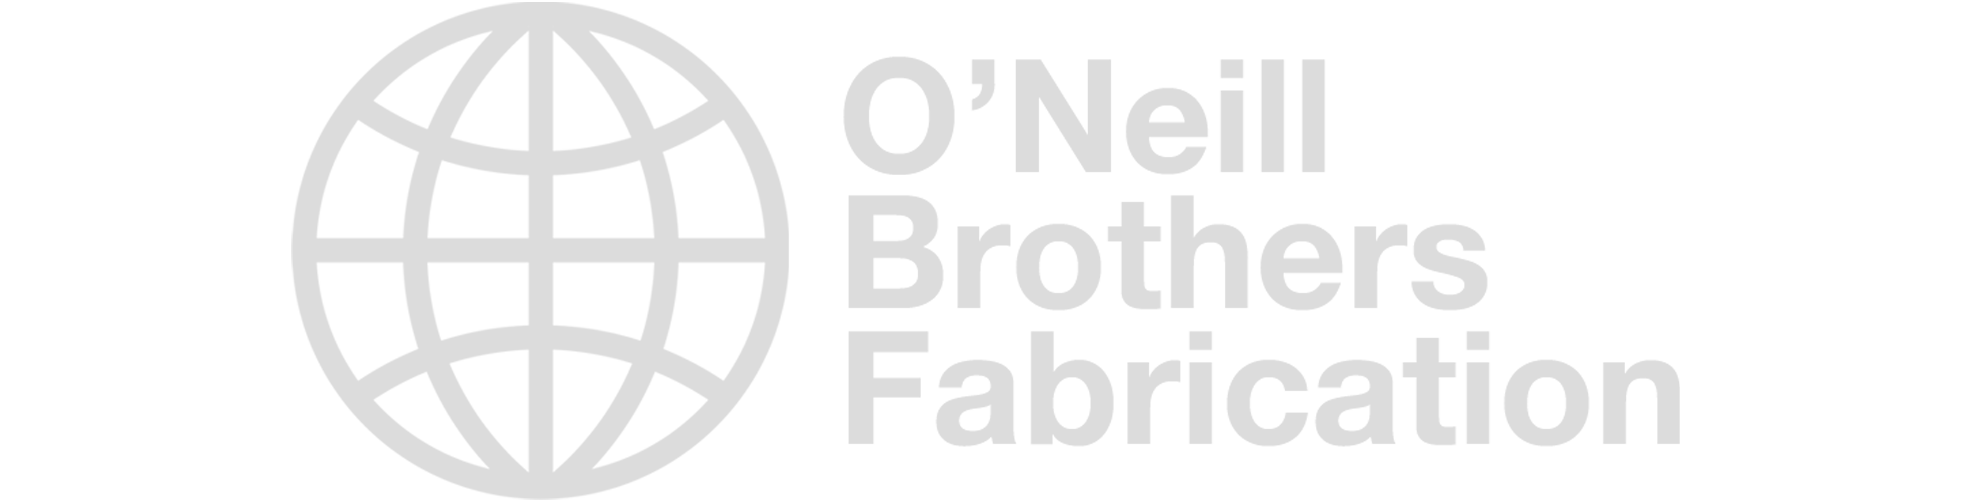 Oneill Brothers Fabrication